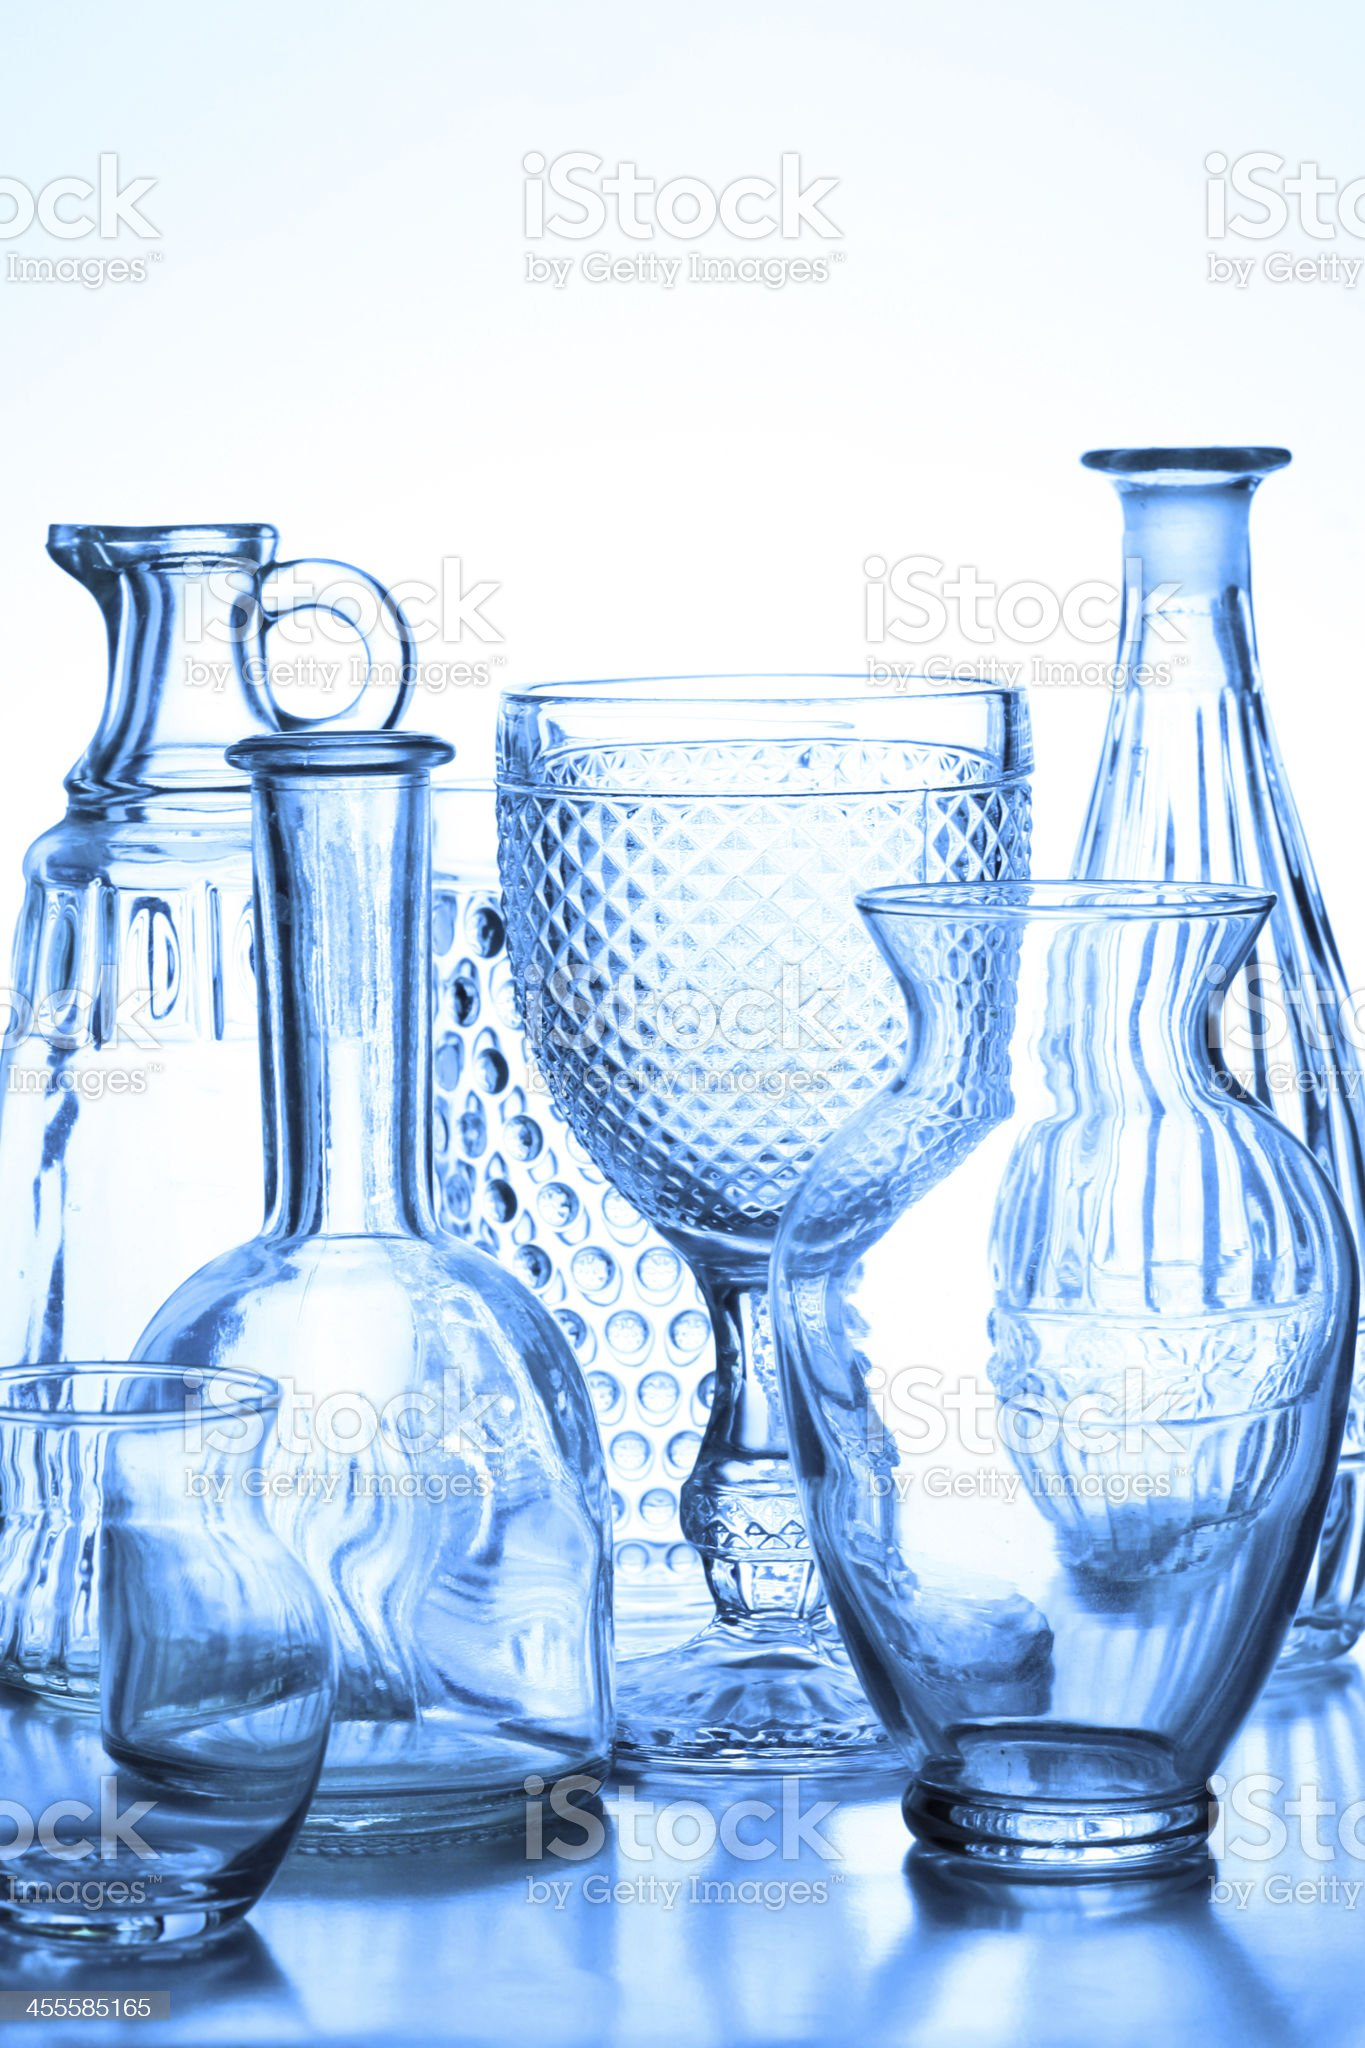 Collection of glass vases backlit with blue tone. royalty-free stock photo